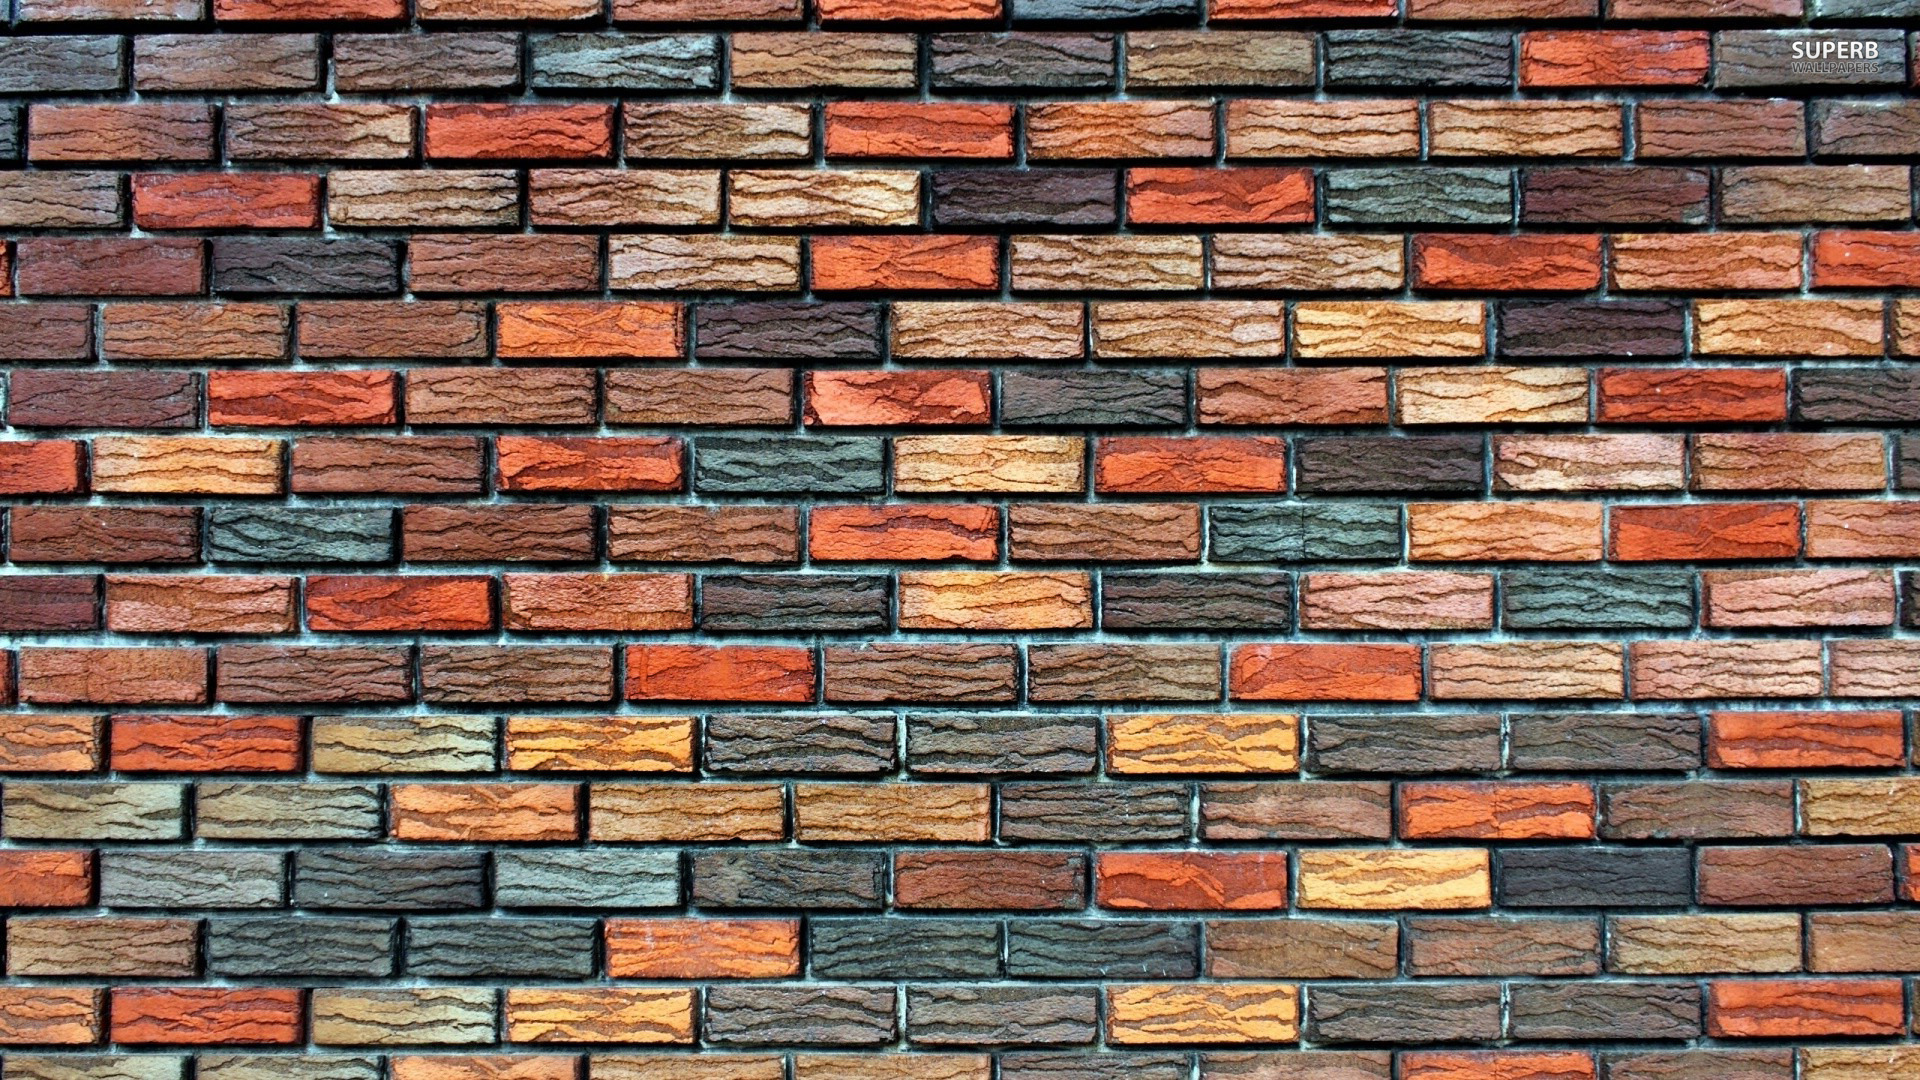 Brick wall wallpaper 1920x1080